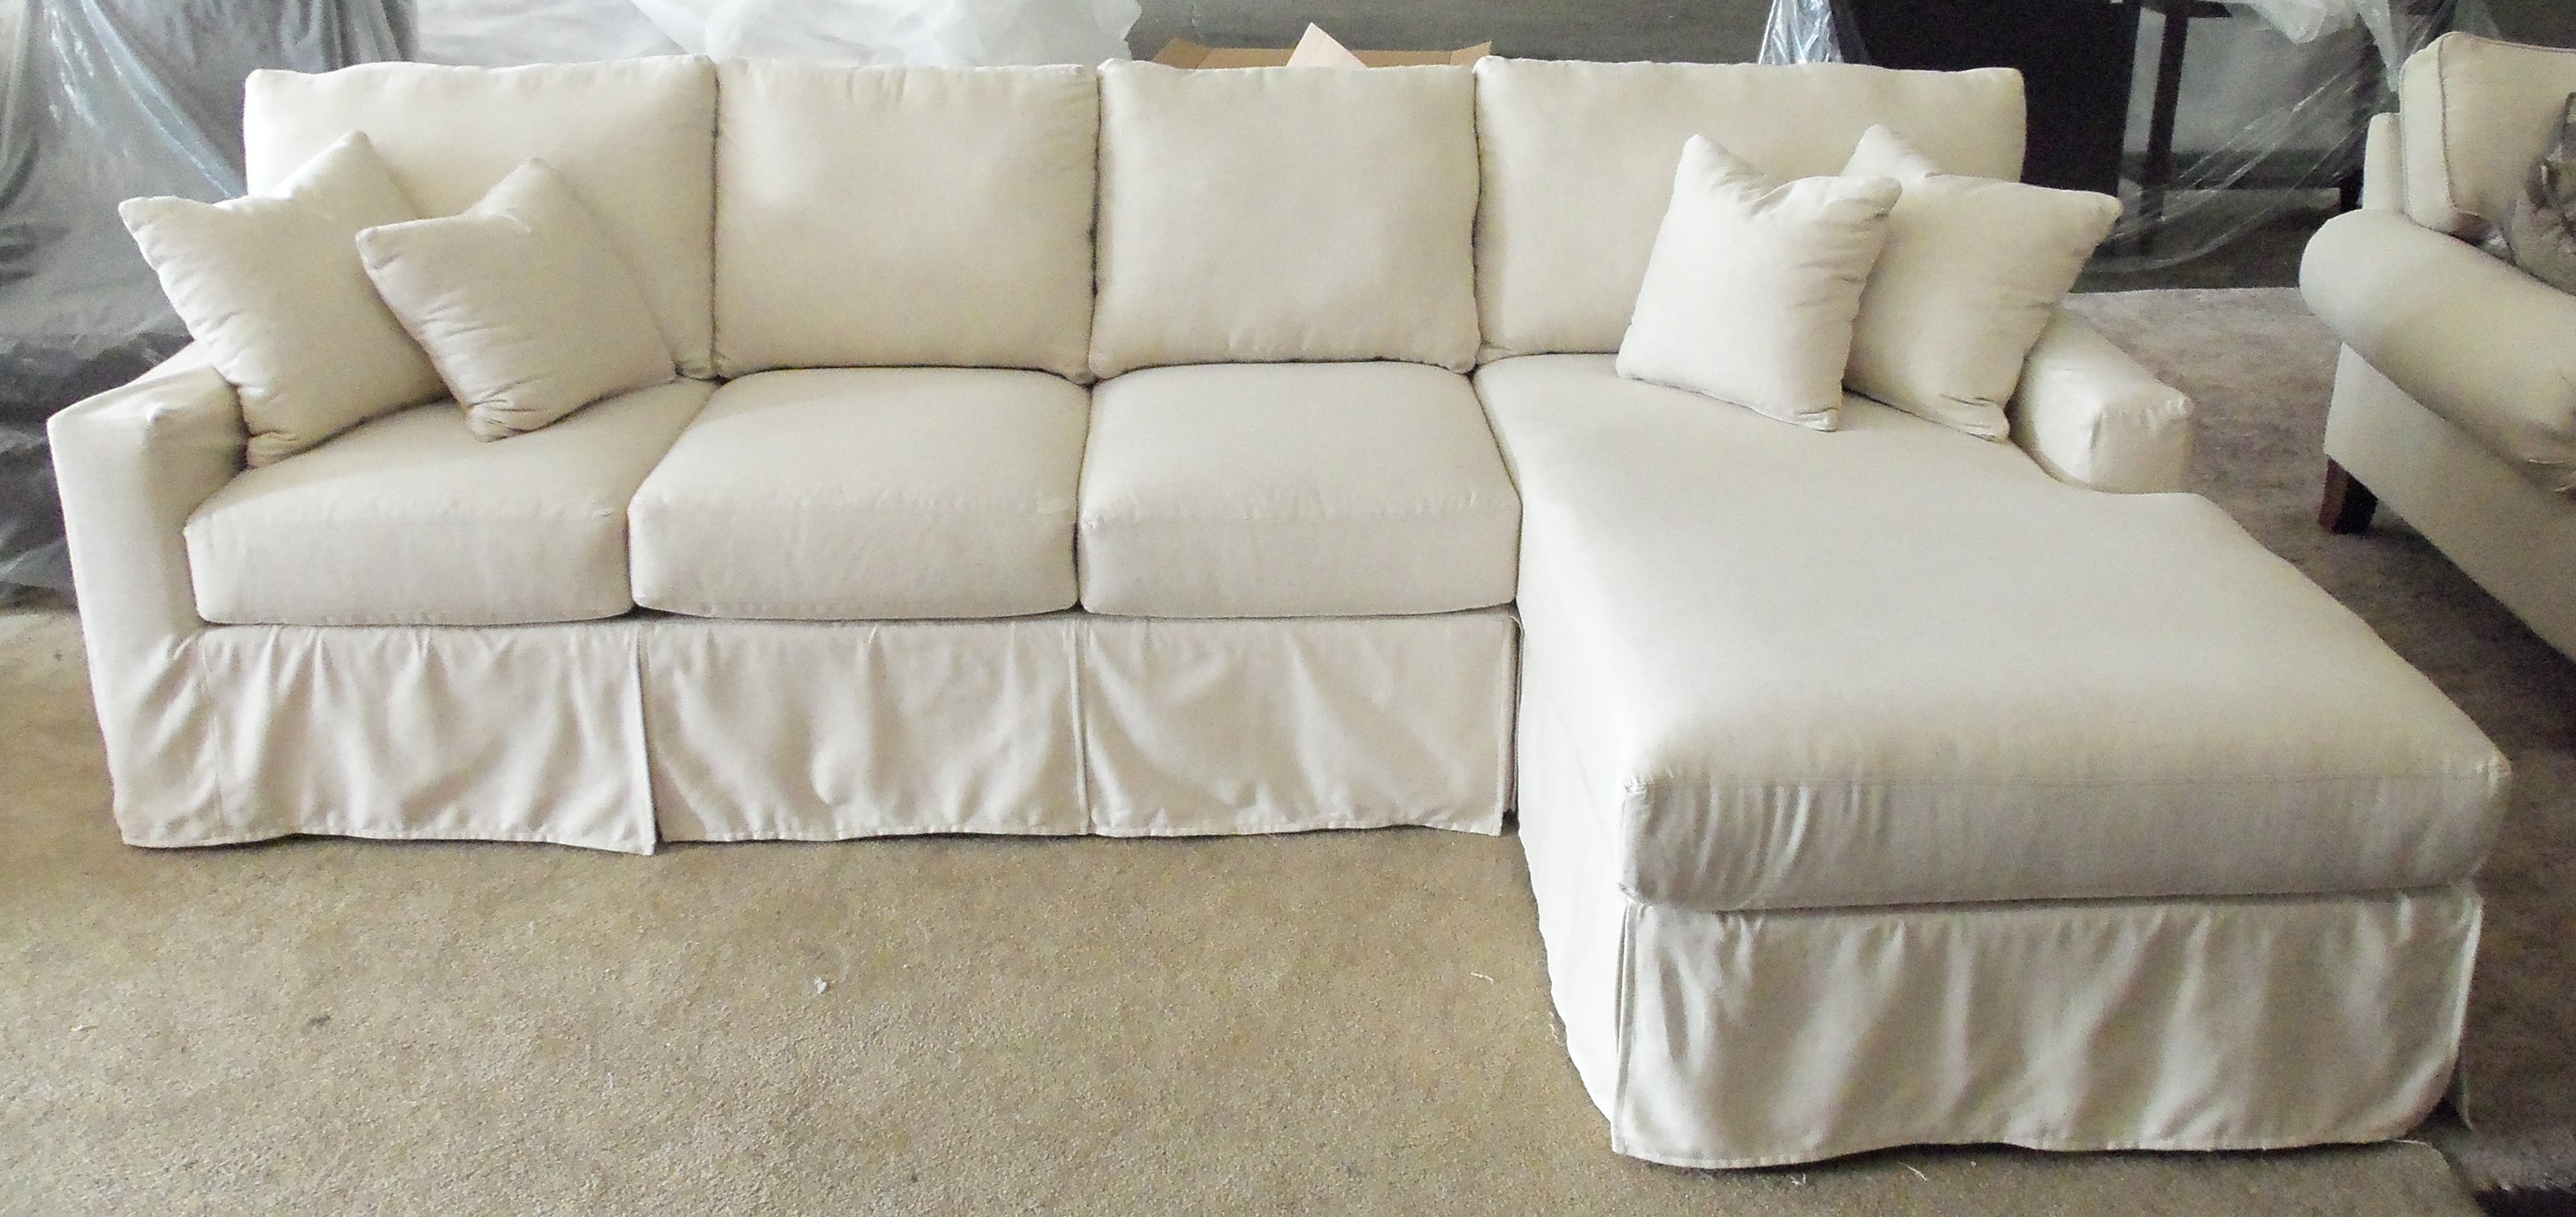 Round Sectional Sofa Slipcover | Catosfera With Sectional Sofas With Covers (View 8 of 15)